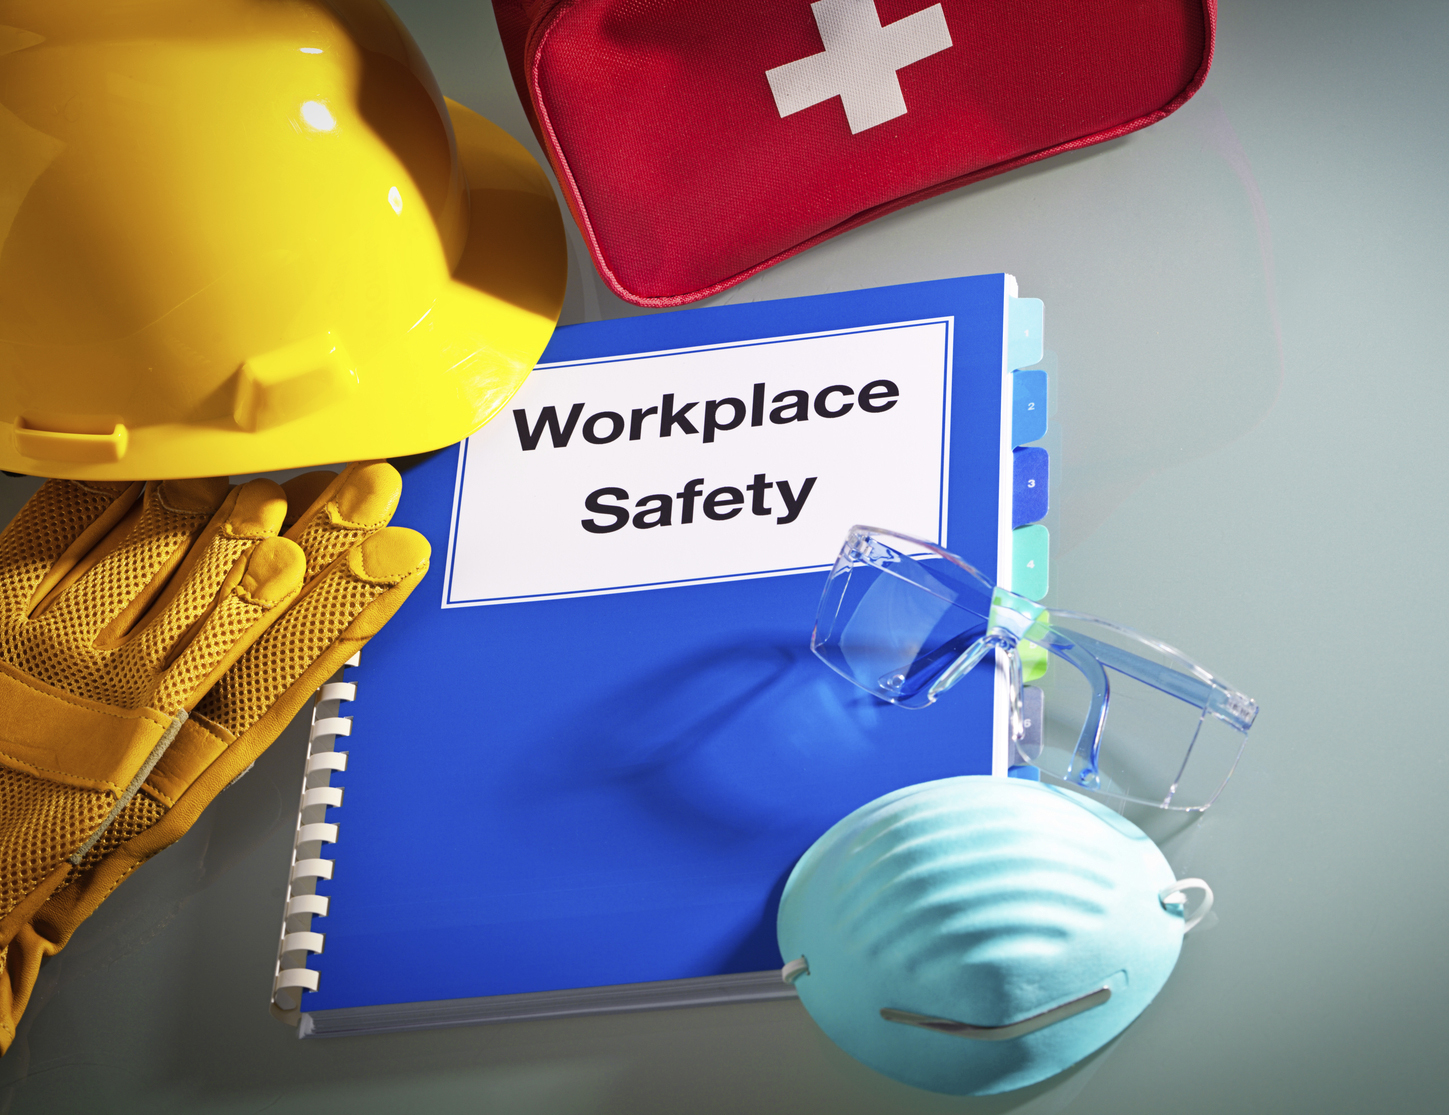 Safety-manual-hard-hat-first-aid-kit